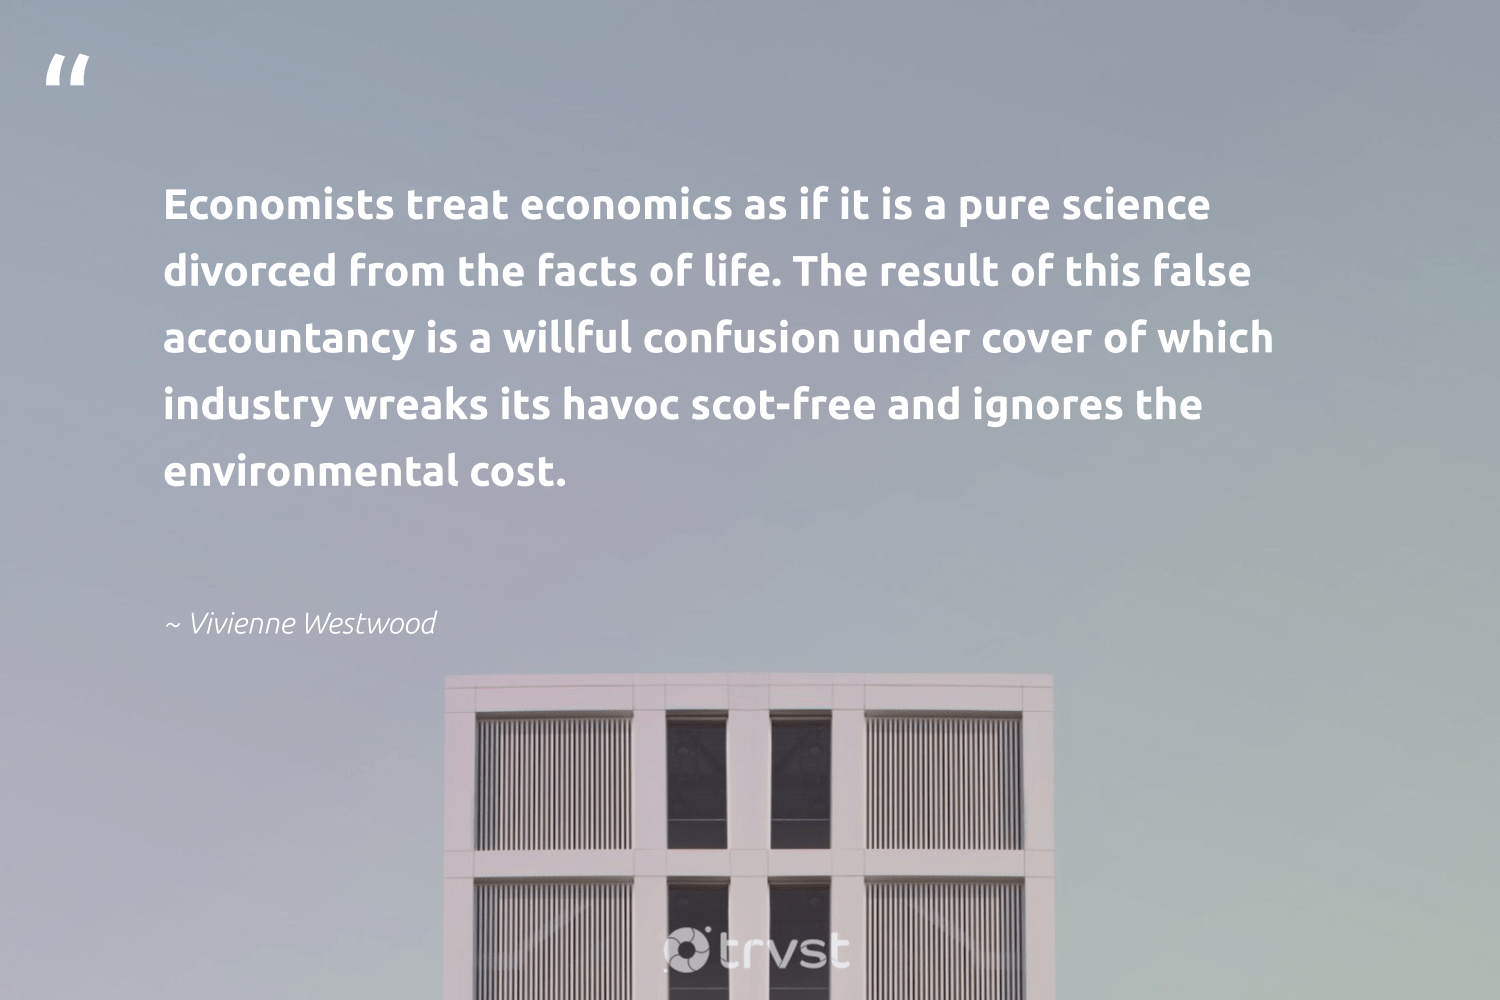 """""""Economists treat economics as if it is a pure science divorced from the facts of life. The result of this false accountancy is a willful confusion under cover of which industry wreaks its havoc scot-free and ignores the environmental cost.""""  - Vivienne Westwood #trvst #quotes #economics #environmental #science #research #socialchange #palaeontology #planetearthfirst #biology #dogood #spider"""